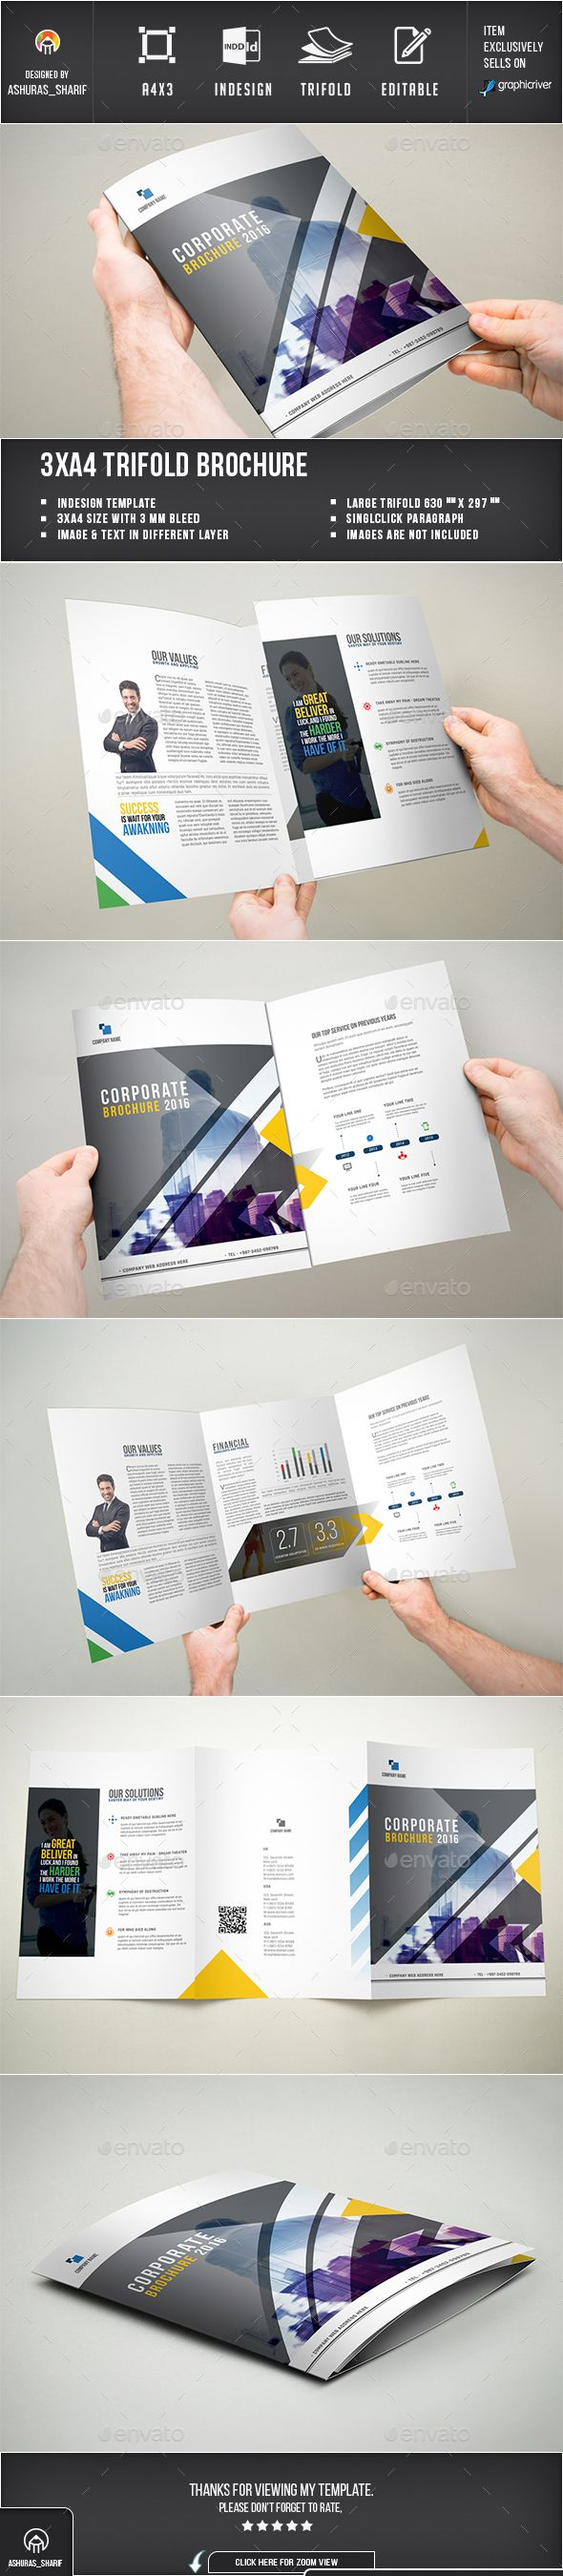 Trifold Brochure - Brochures Print Templates Easy Customization and Editable 3xA4 (630×297) + 3mm bleed Paragraph Style, Character style included Images, text are Different Layers Design in 300 DPI Resolution Simple Color Swatches for apply Whole Documents Indesign files Images are not Included working file adobe cc CC,CS6,CS5 & C4 or latter version supported